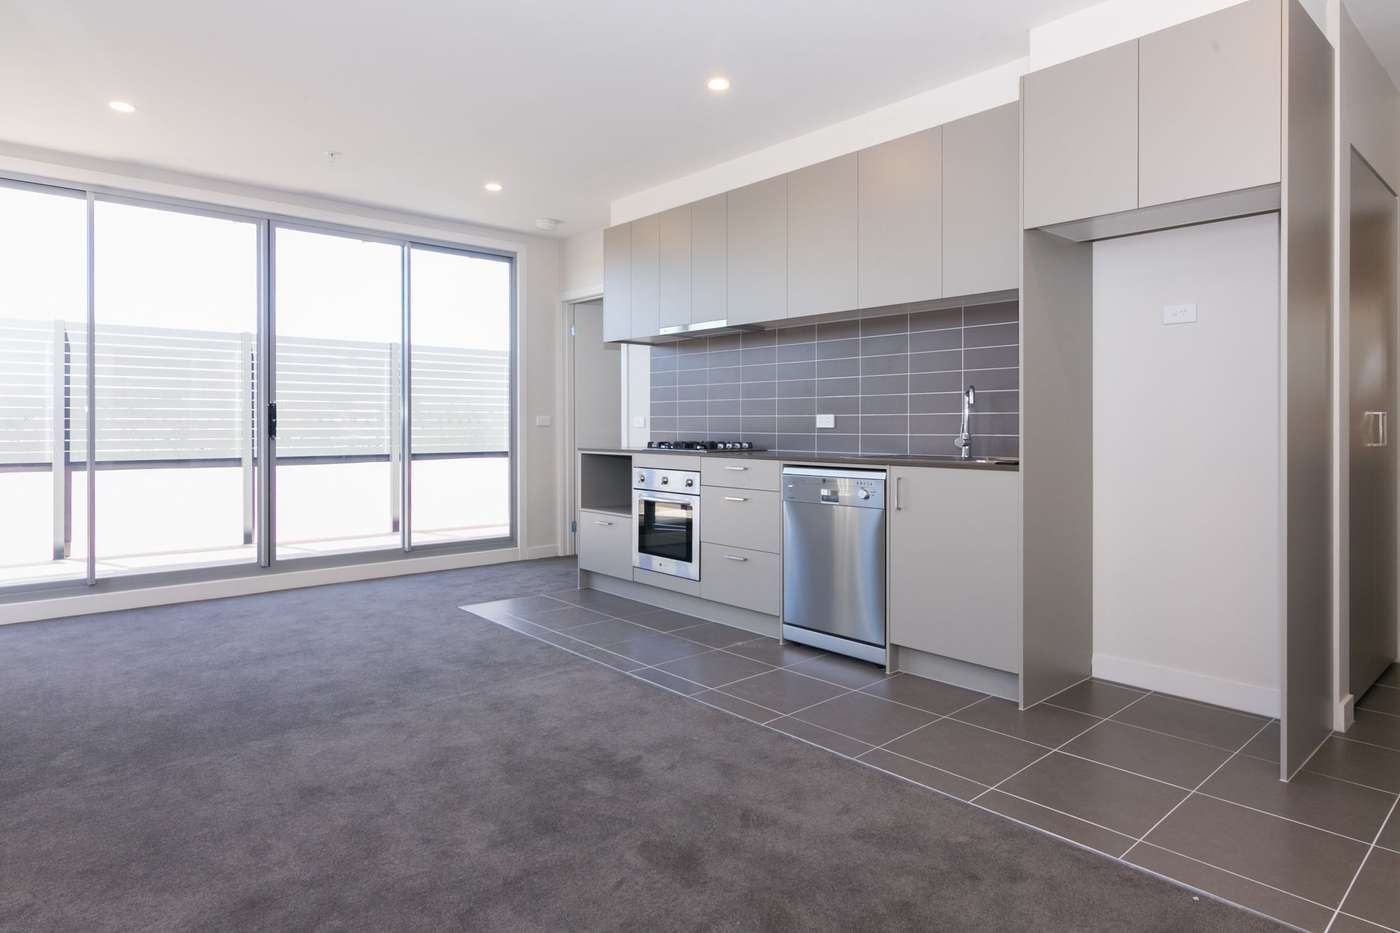 Main view of Homely apartment listing, 301/450 Bell Street, Preston, VIC 3072